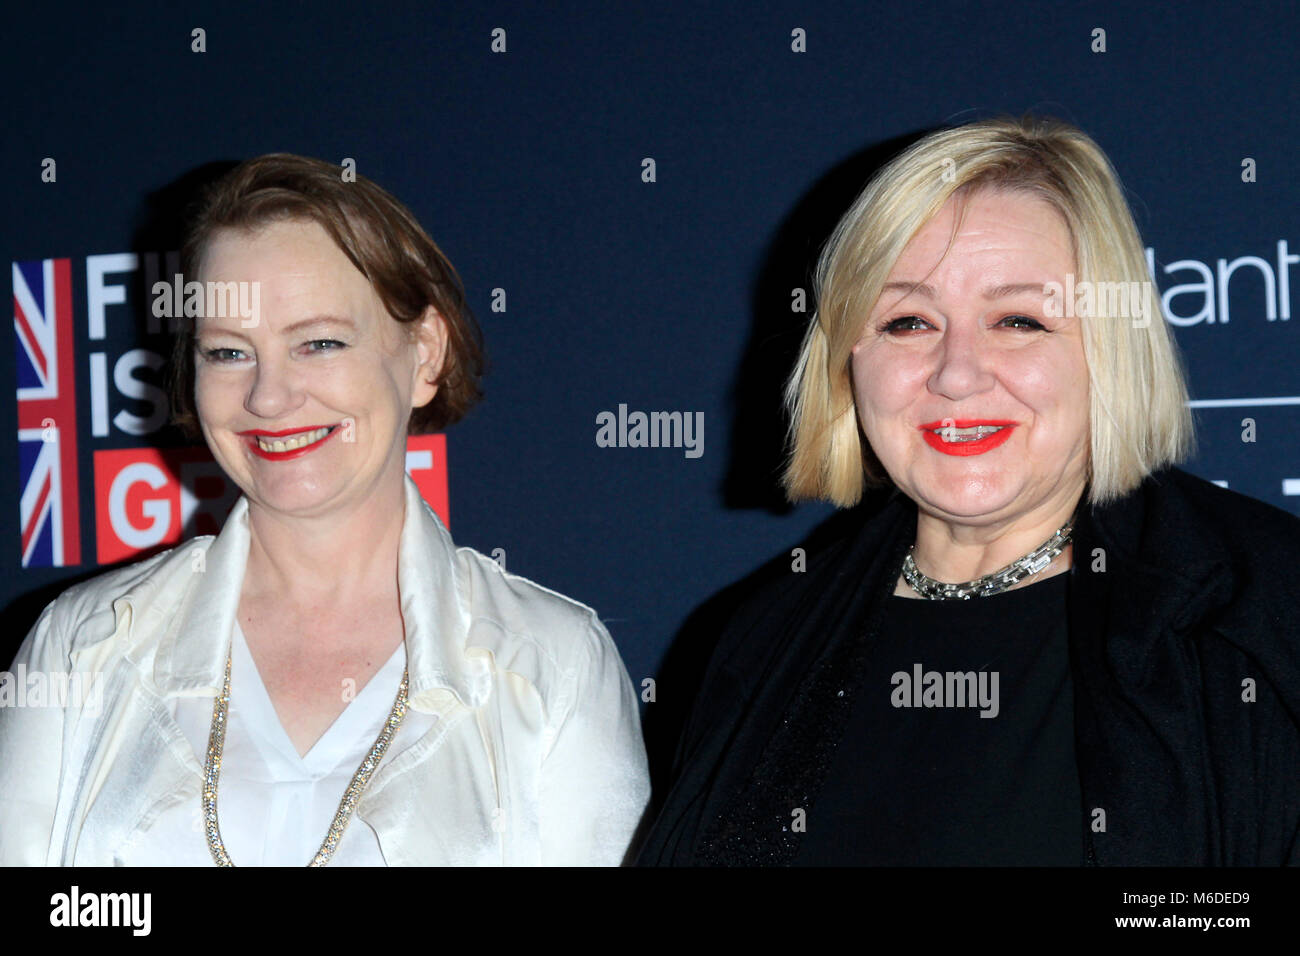 LA, California. 2nd March 2018. Katie Spencer and Sarah Greenwood attending the 'Film is Great' British - Stock Image